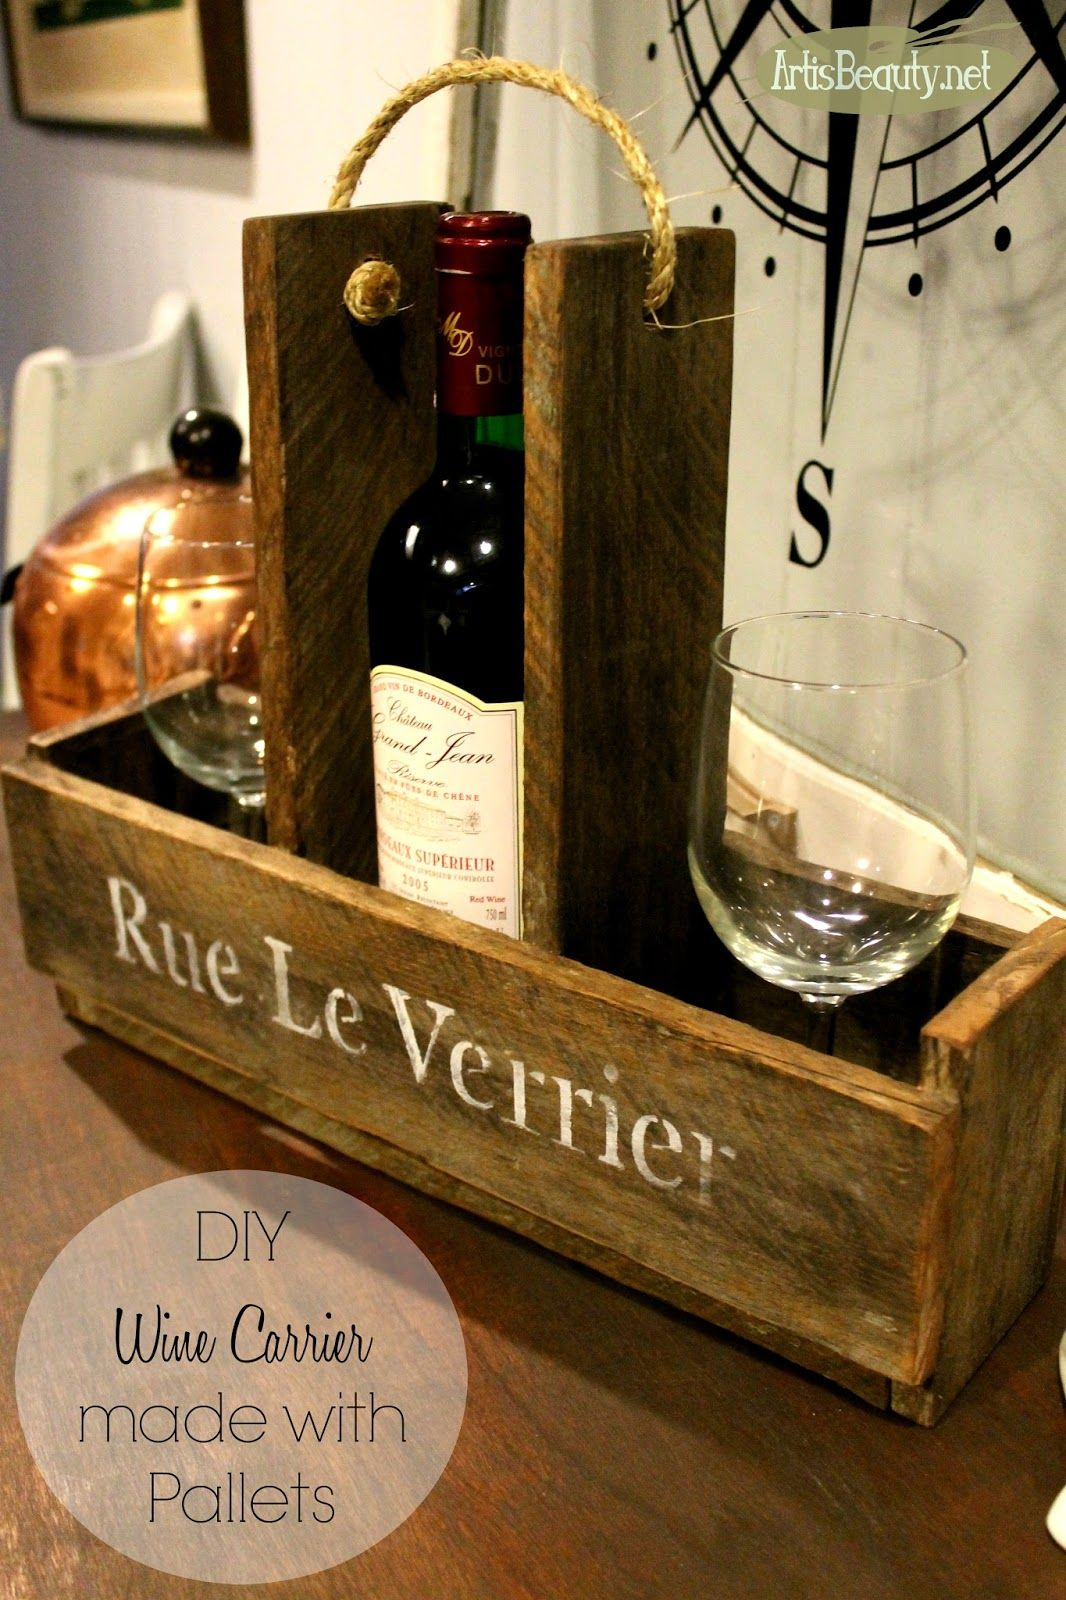 Diy Range Bouteille Diy French Wine And Wine Glass Carrier Made From Pallets Wine